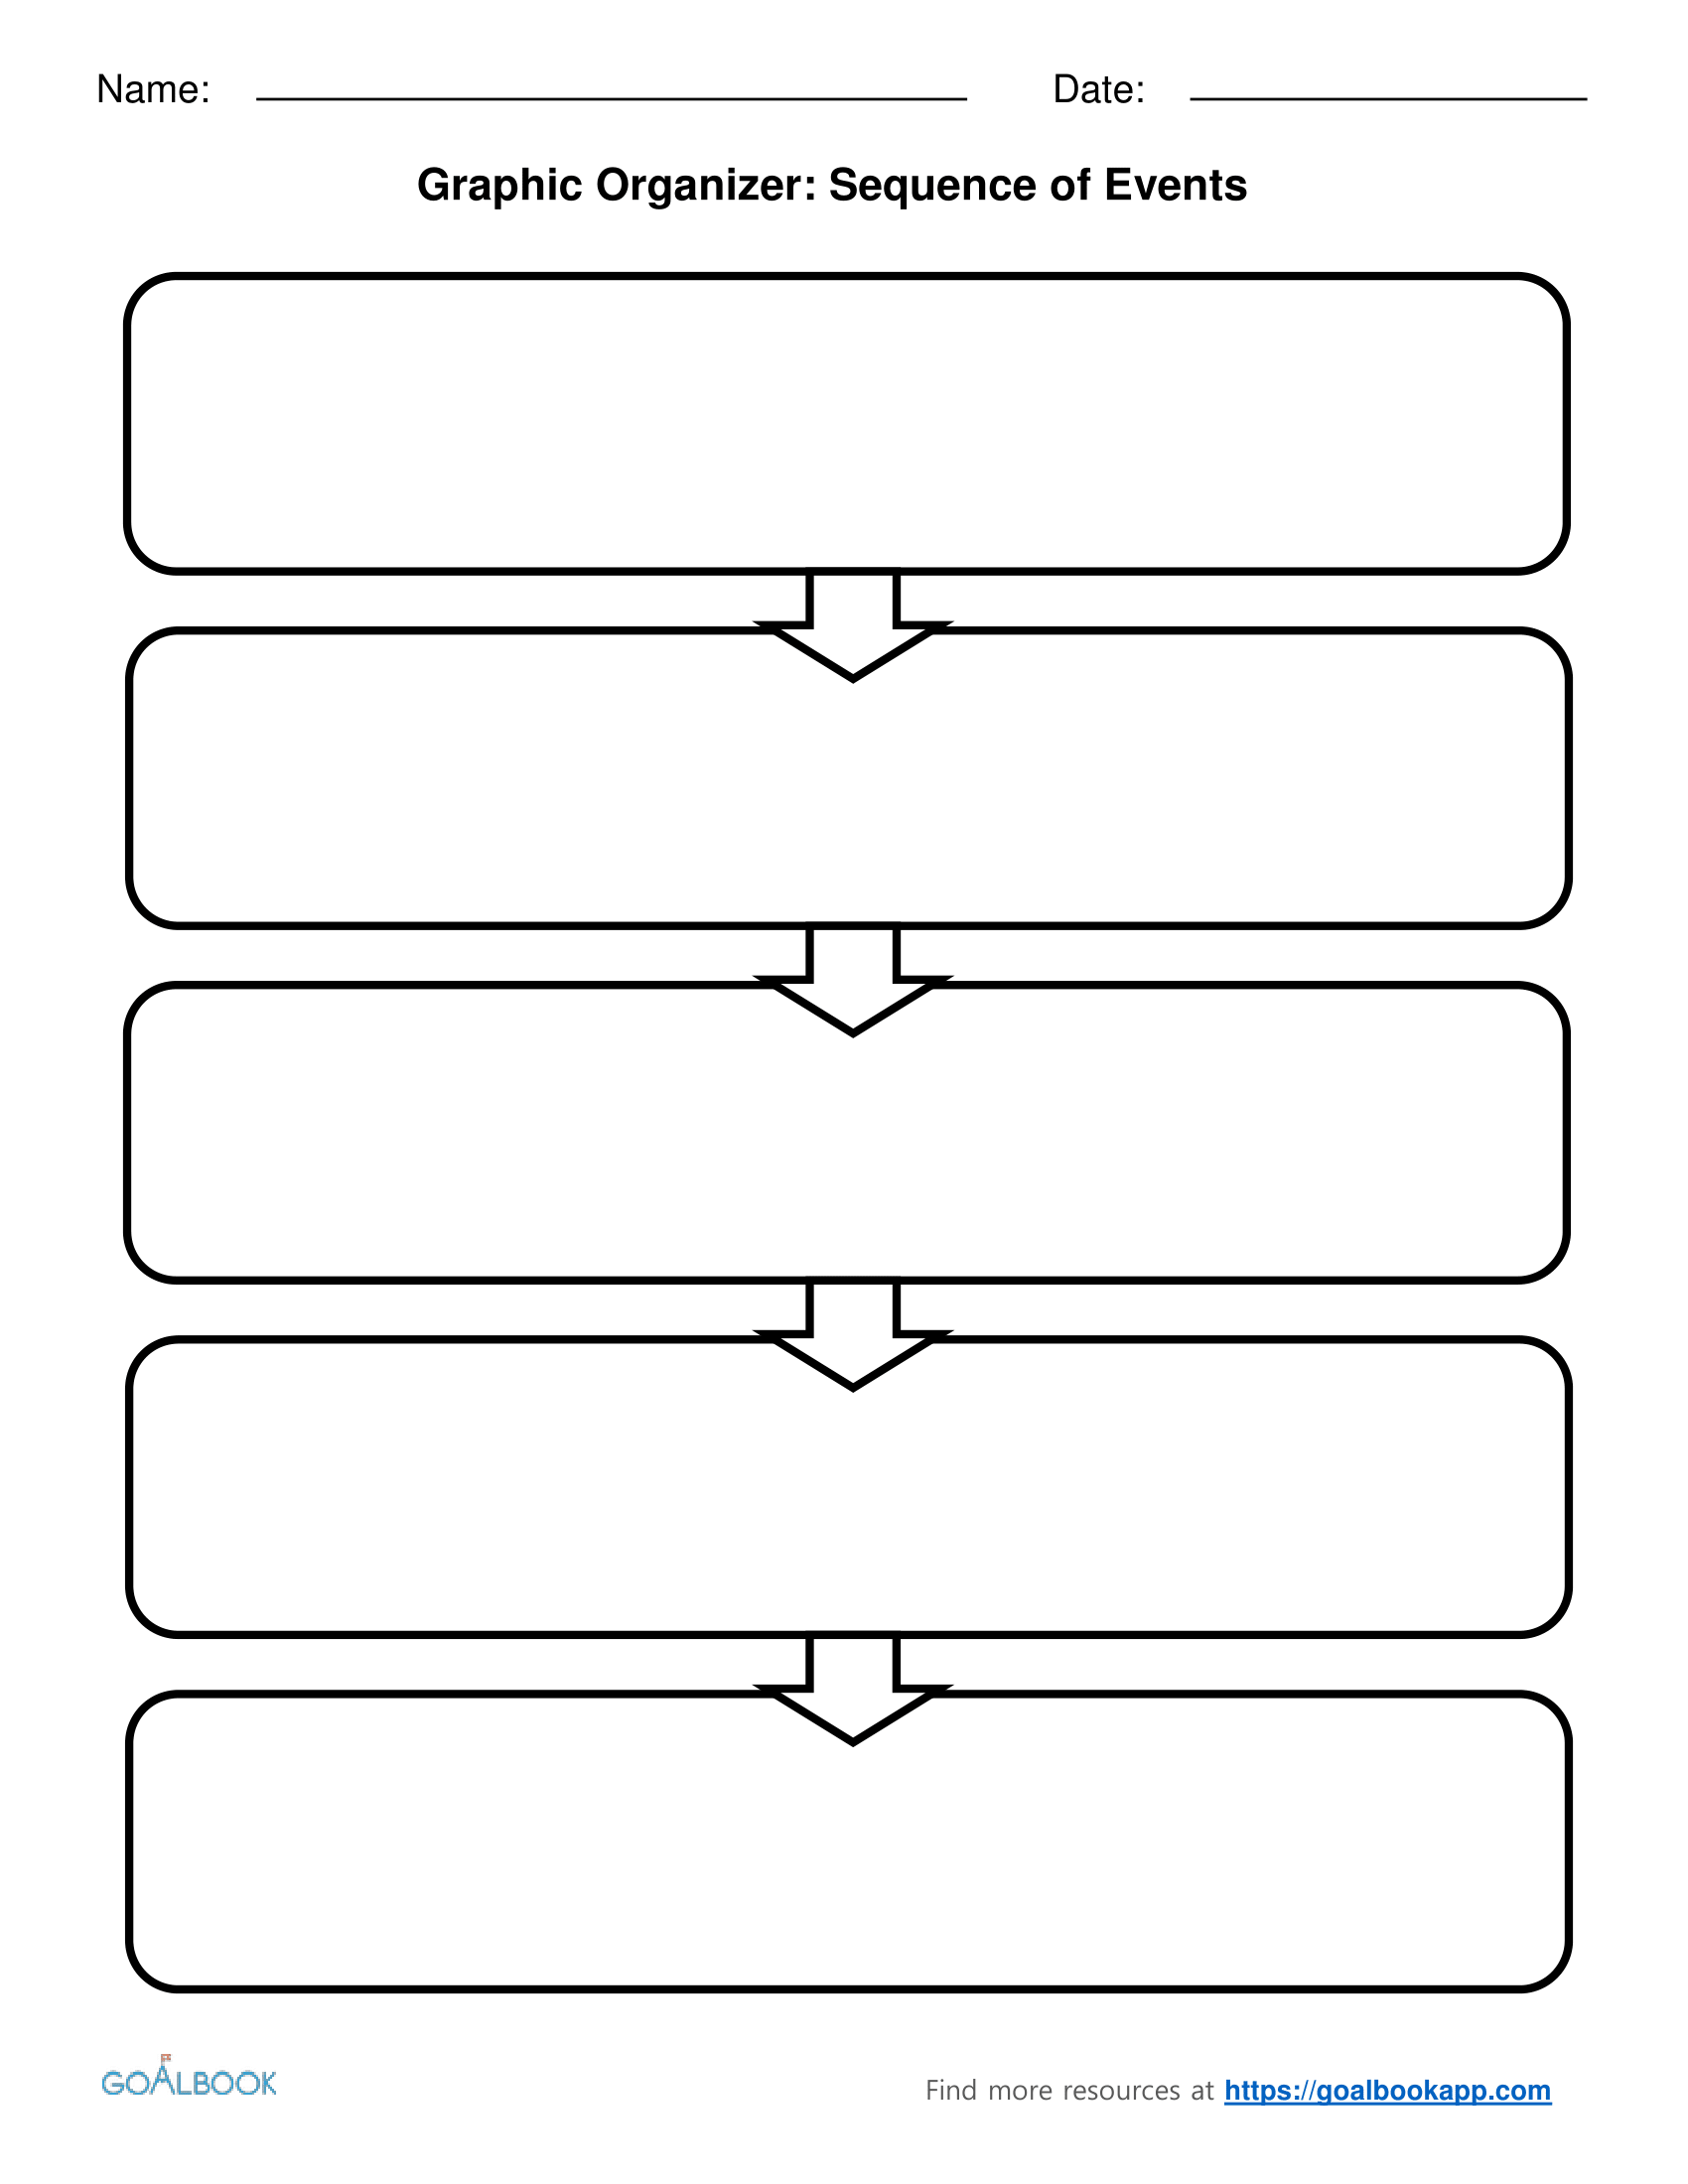 medium resolution of 05_Chain_of_Events_Sequence_Organizer_Blank-1.png (1700×2200)   Graphic  organizer template